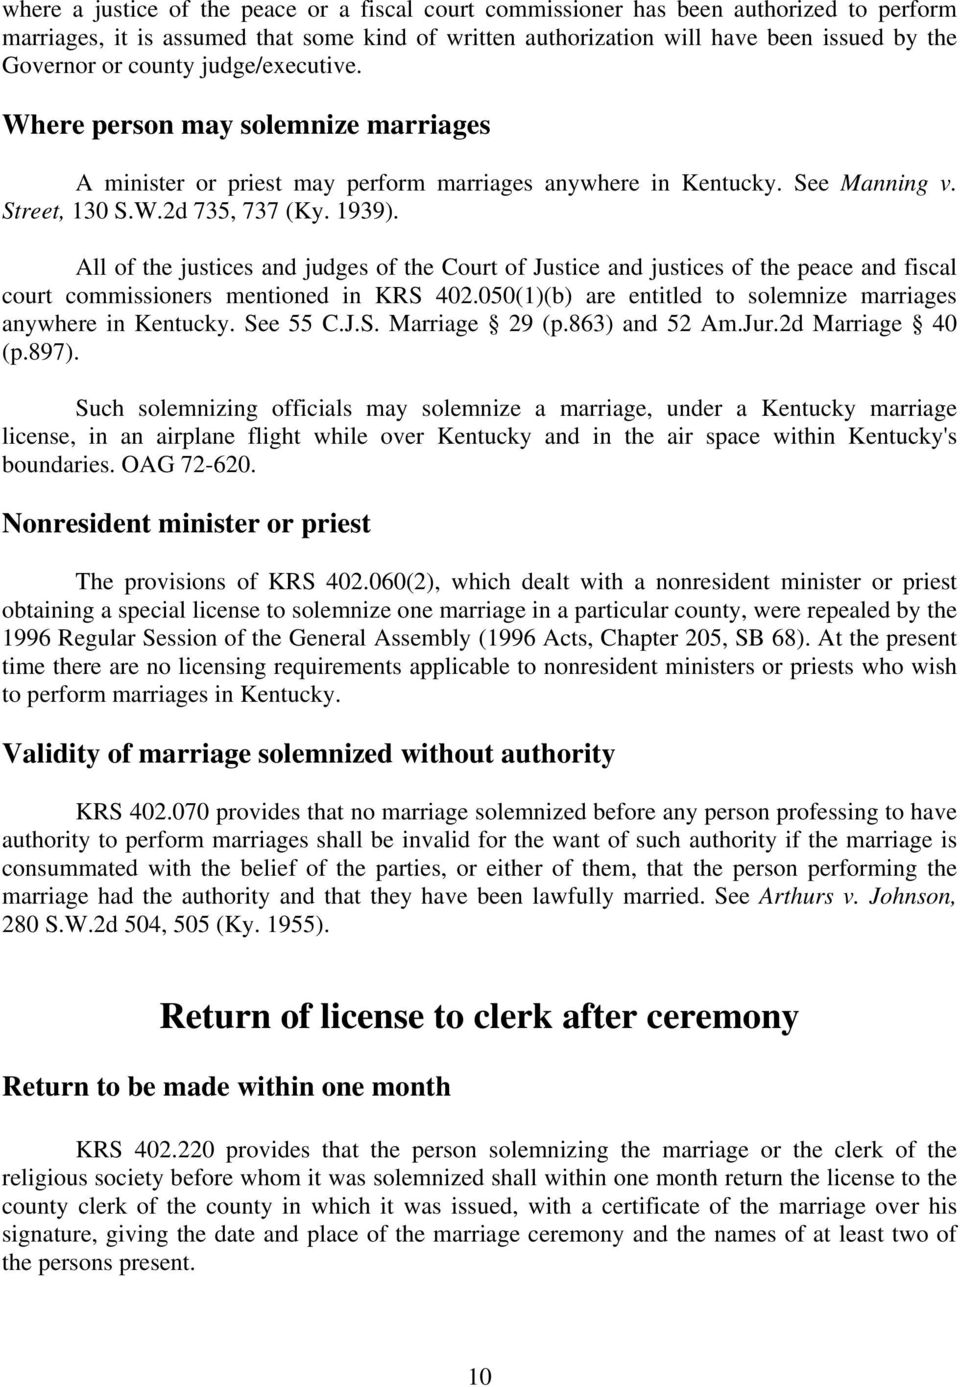 All of the justices and judges of the Court of Justice and justices of the peace and fiscal court commissioners mentioned in KRS 402.050(1)(b) are entitled to solemnize marriages anywhere in Kentucky.